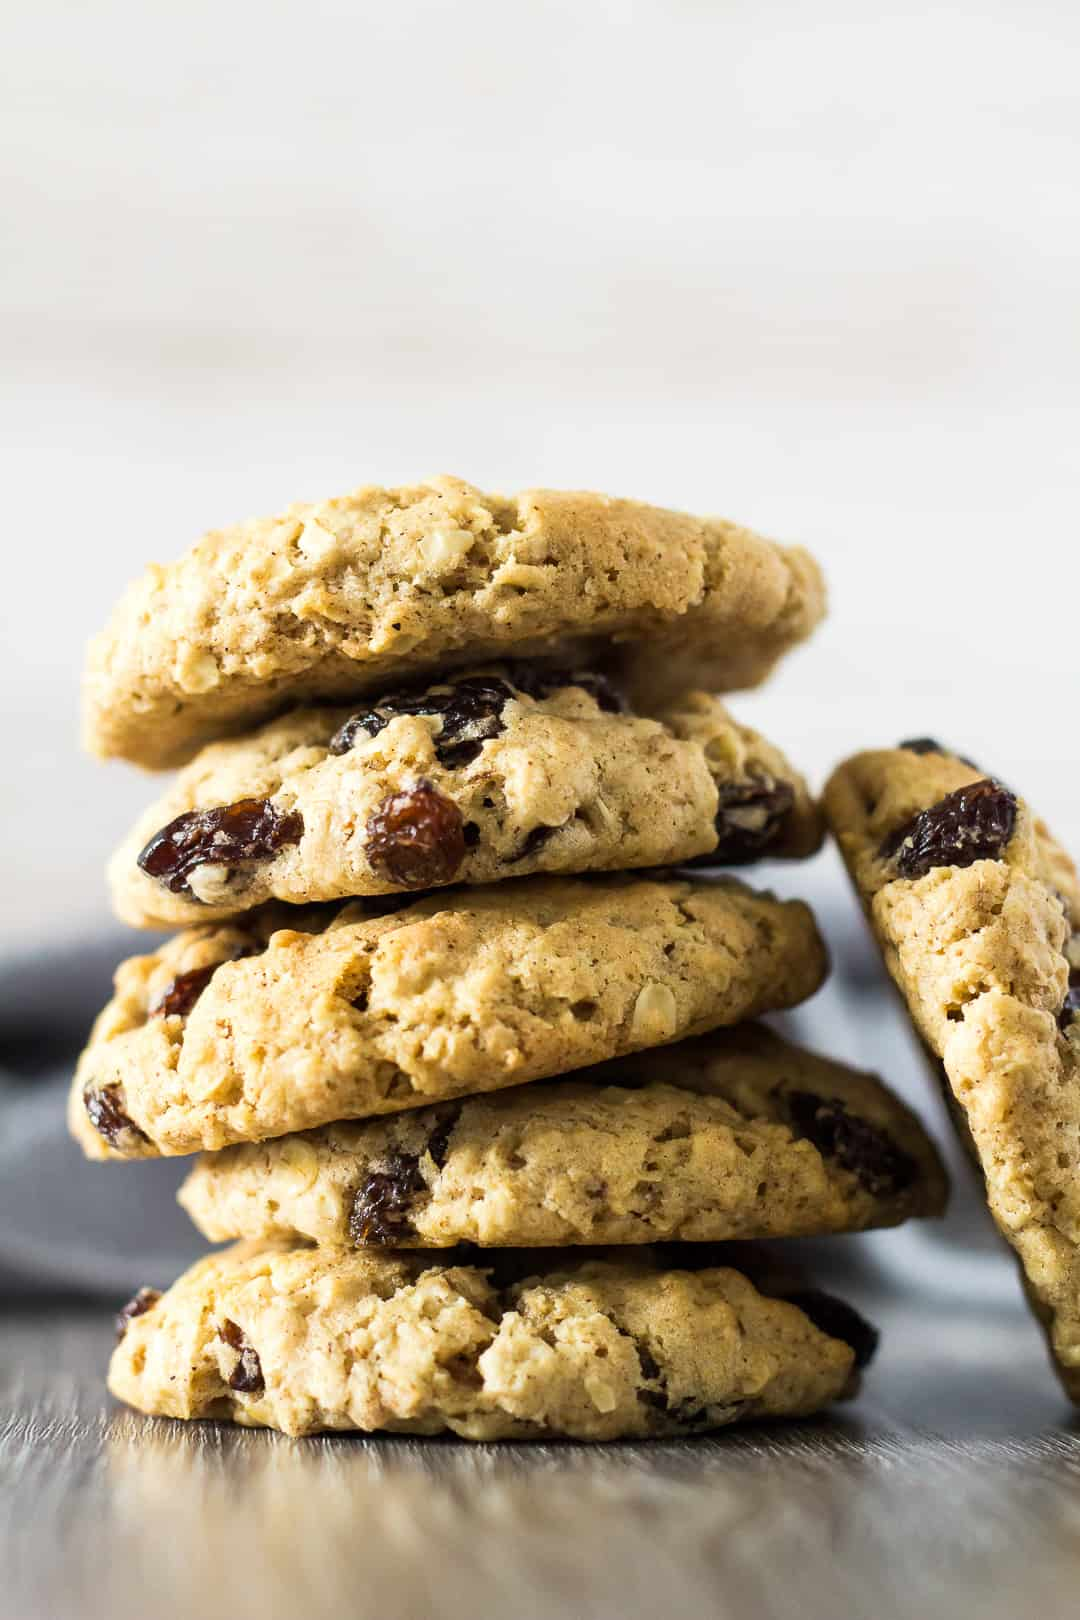 A stack of Oatmeal Raisin Cookies.